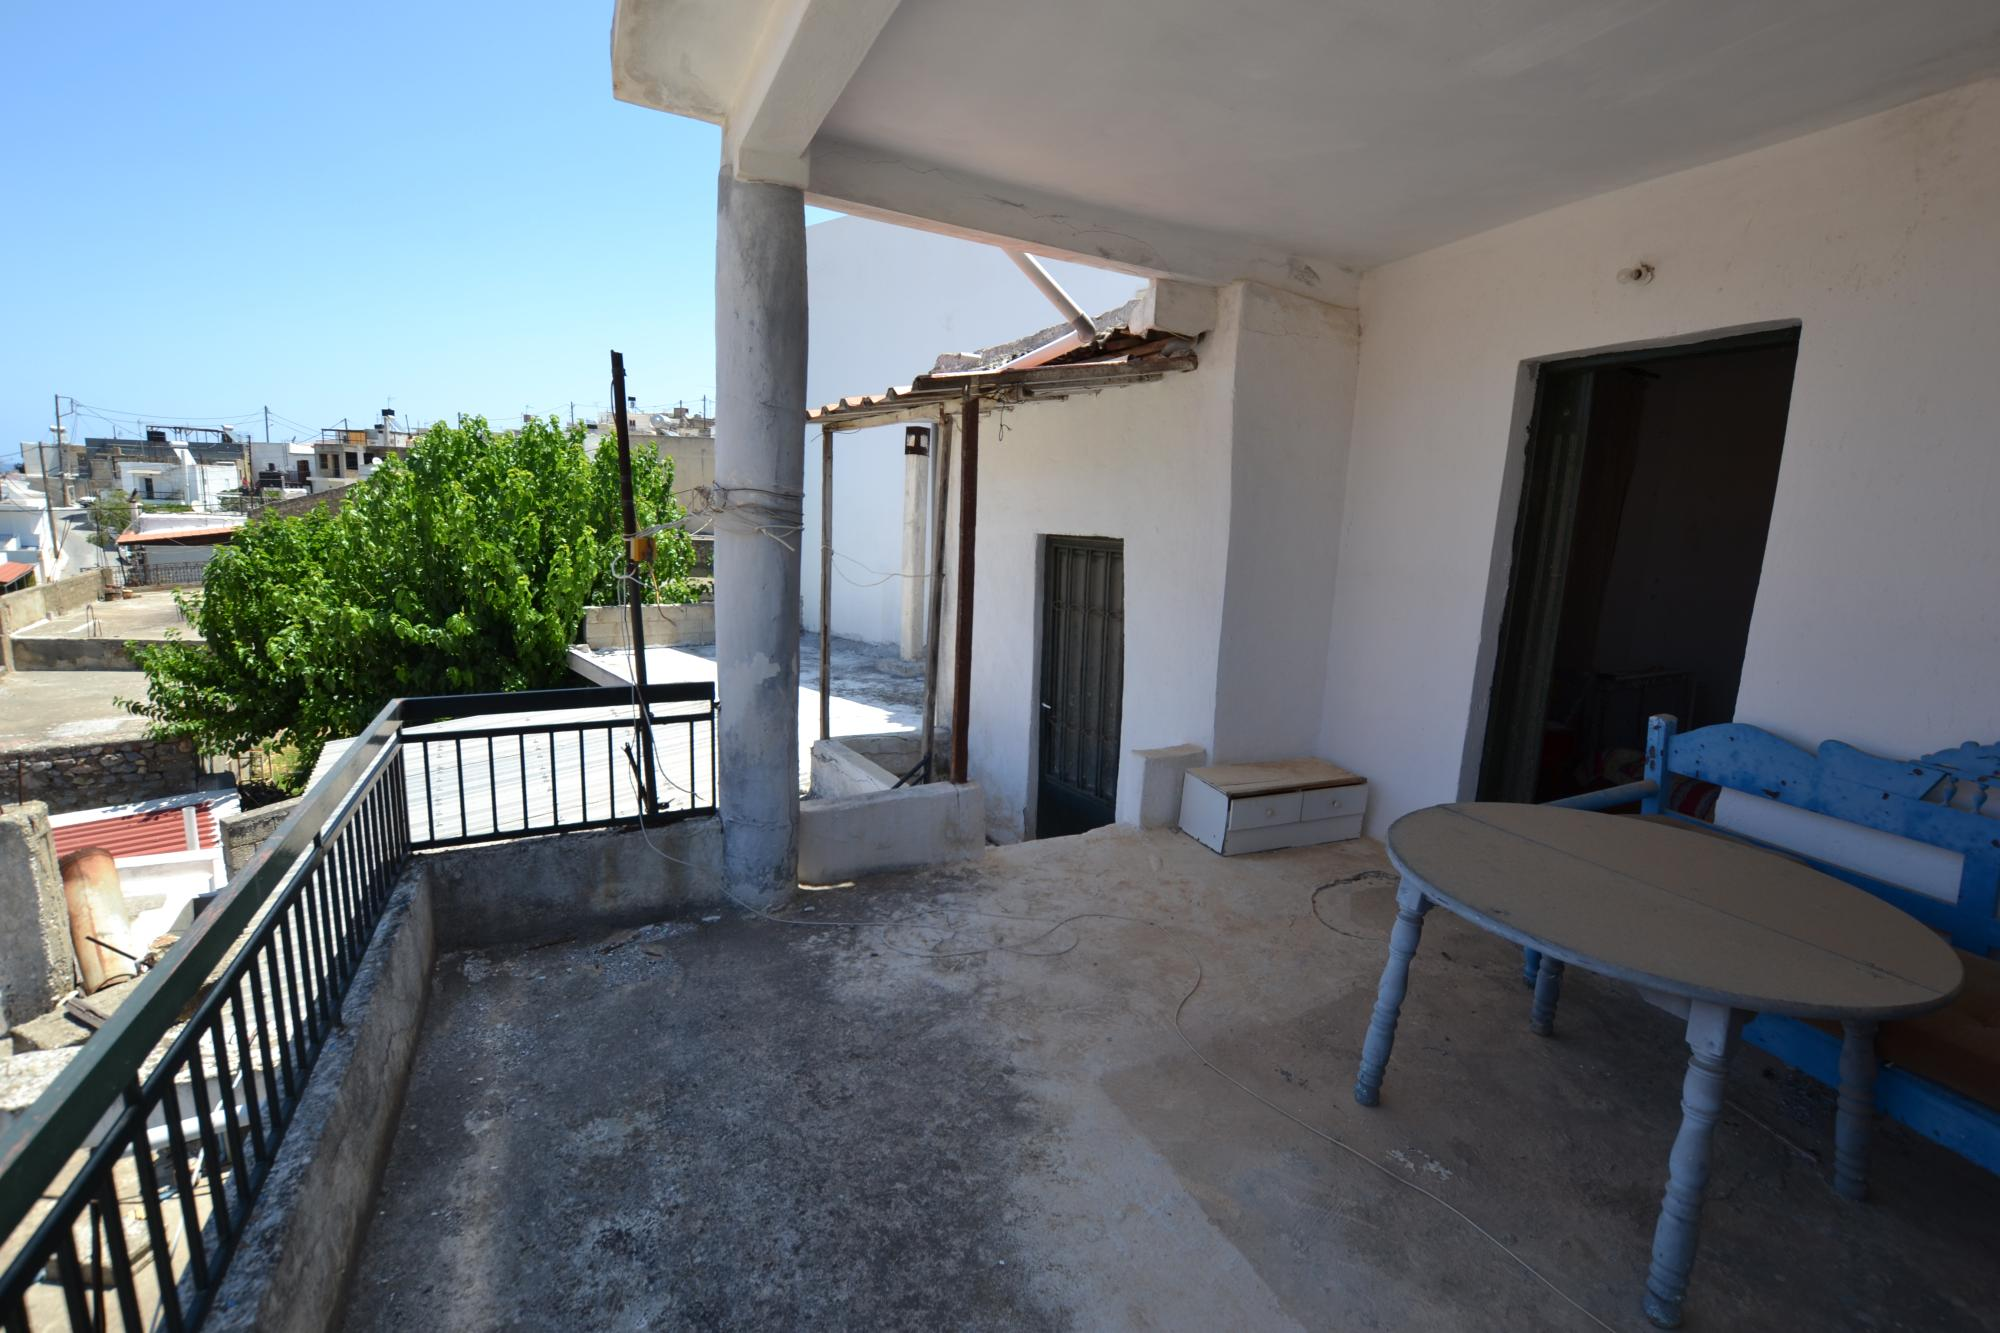 House for renovation with sea views from large balcony.